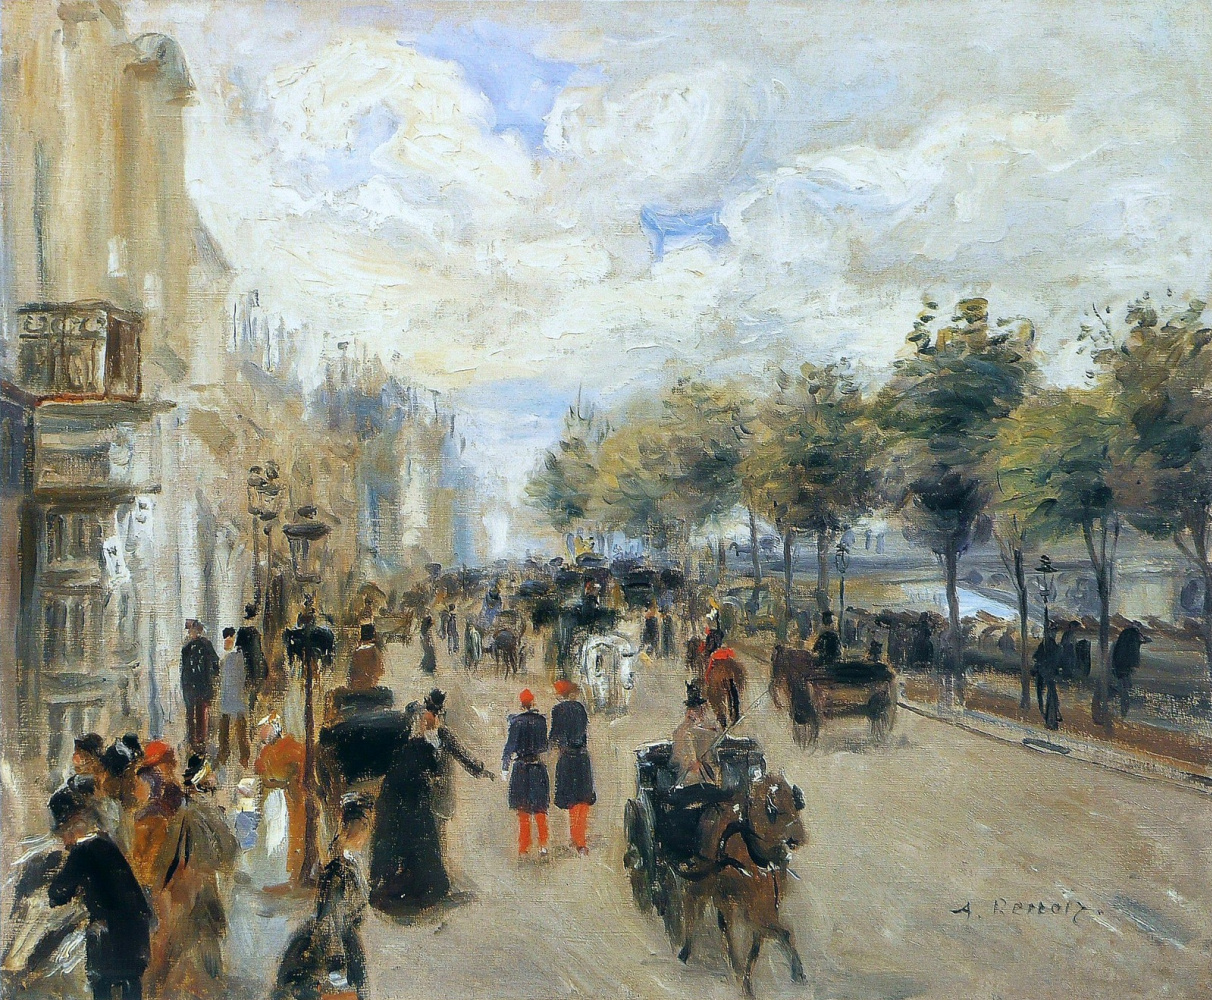 Pierre-Auguste Renoir. Paris, Malac embankment